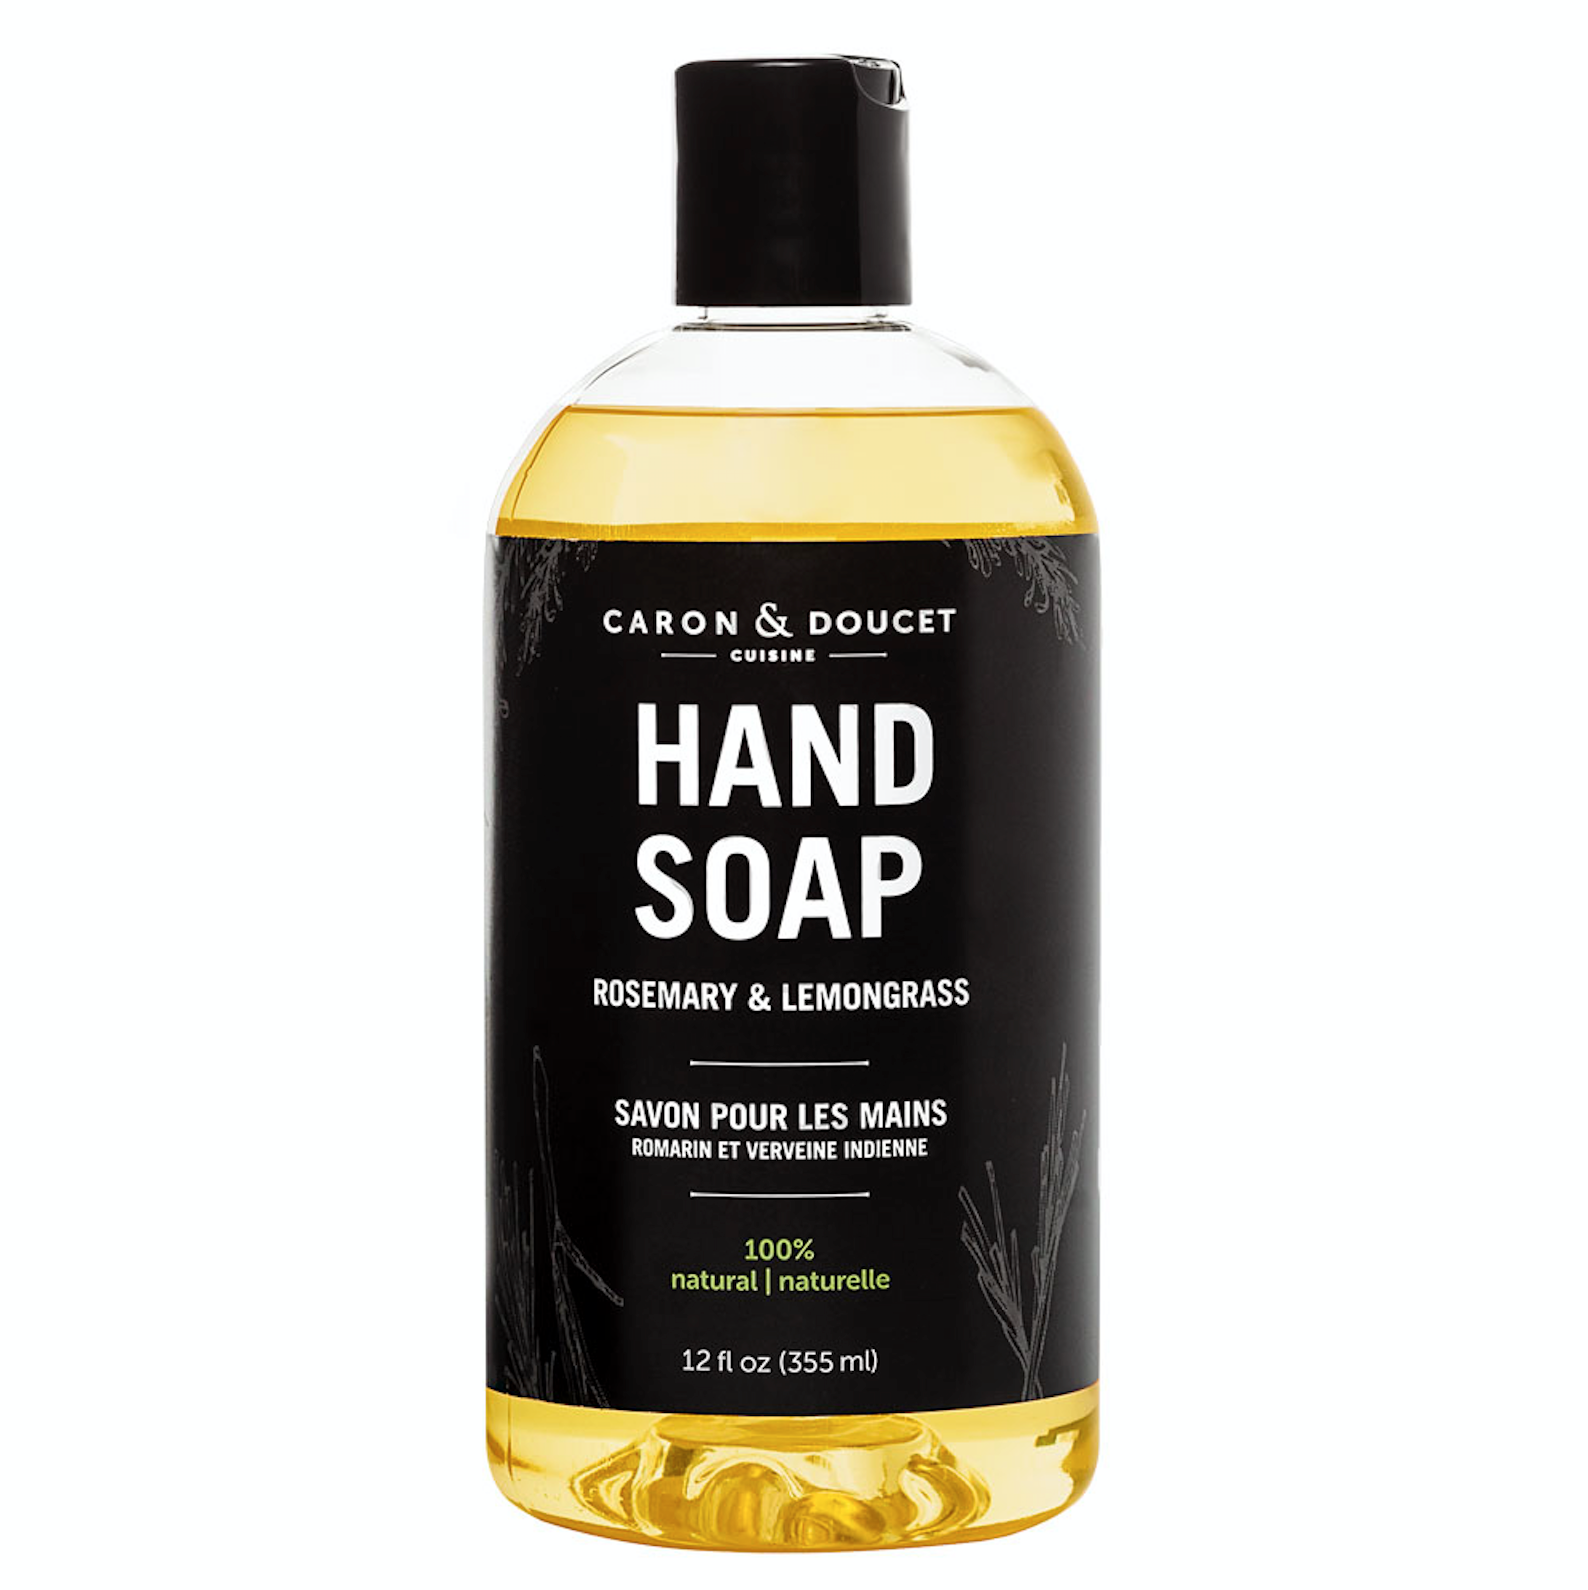 Rosemary & Lemongrass Hand Soap, 12 oz